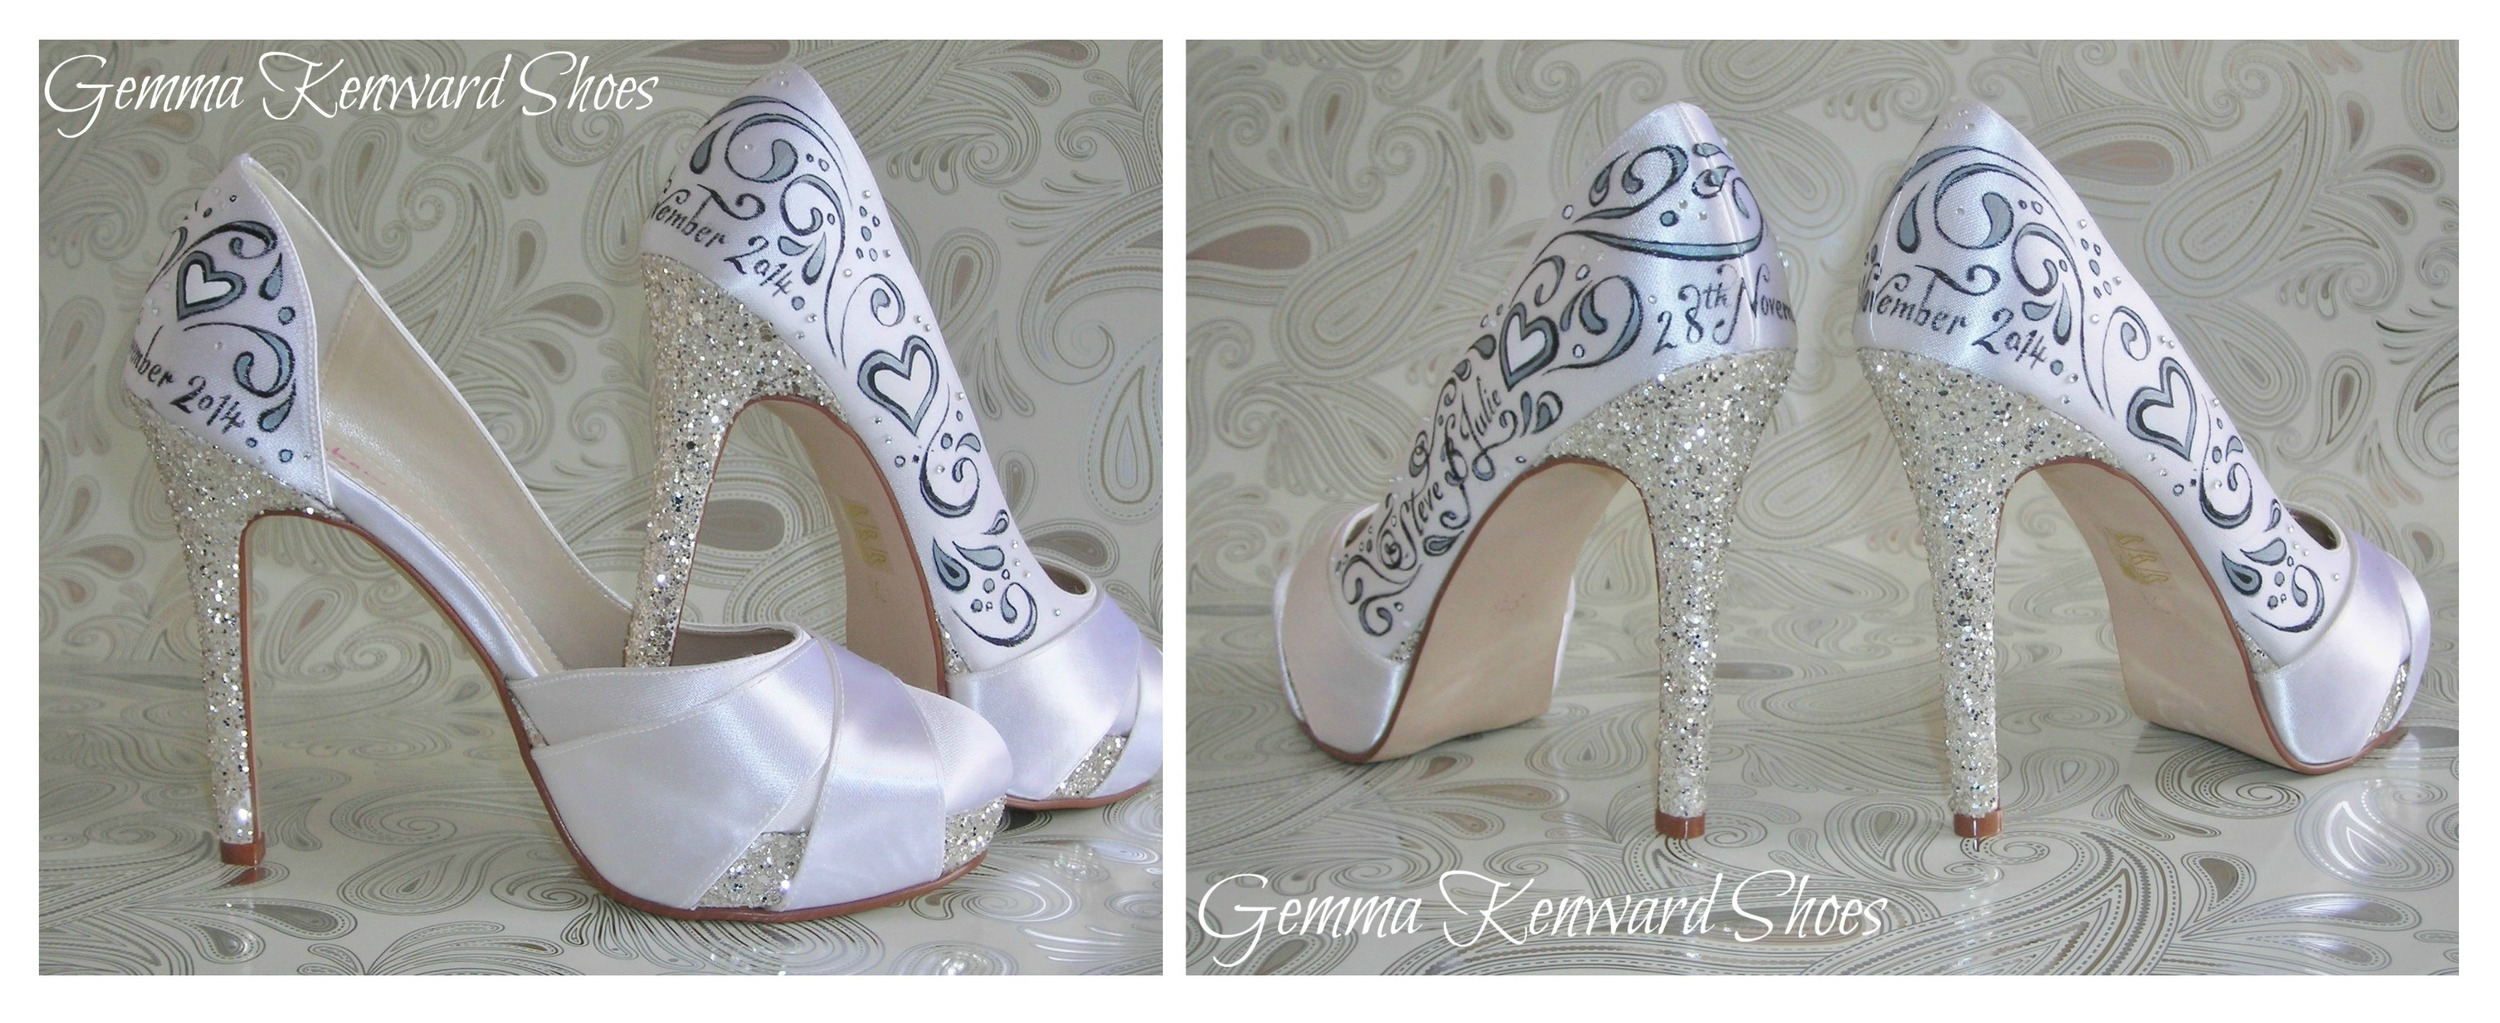 Delicate black silver and black wedding shoes hand painted with hearts.